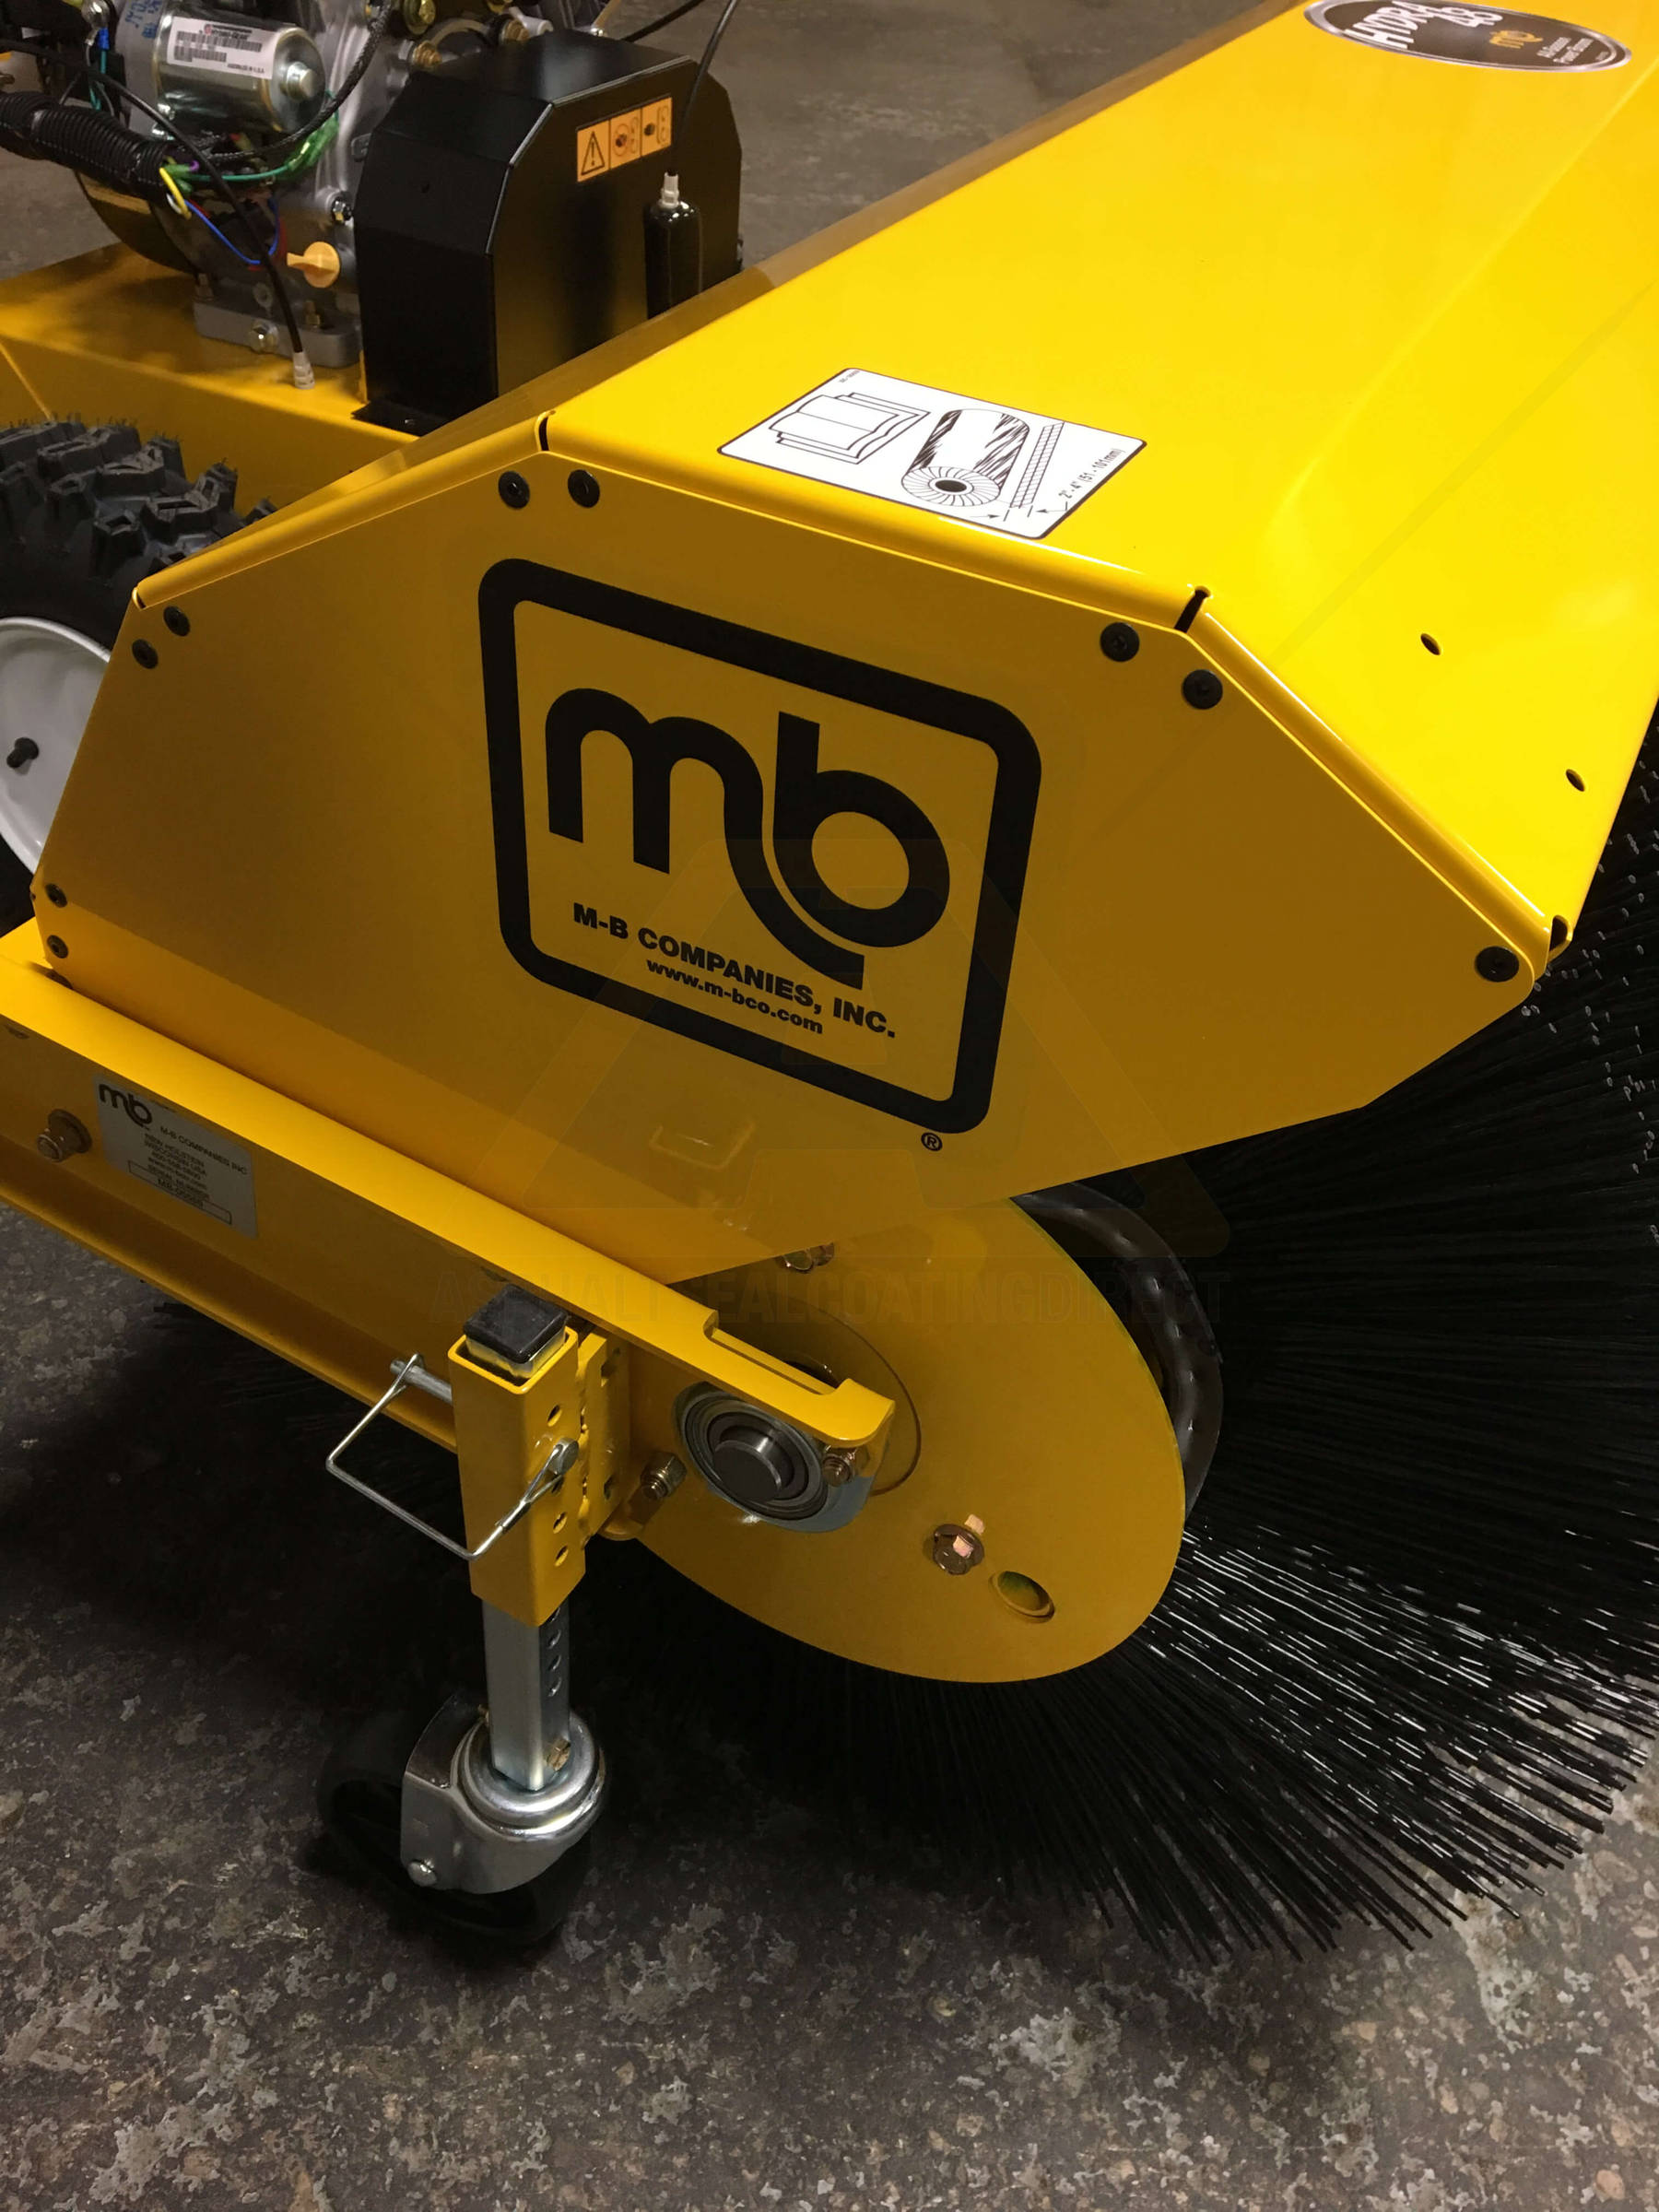 Mb Hydra 48 Inch Self Propelled Walk Behind Pavement Broom